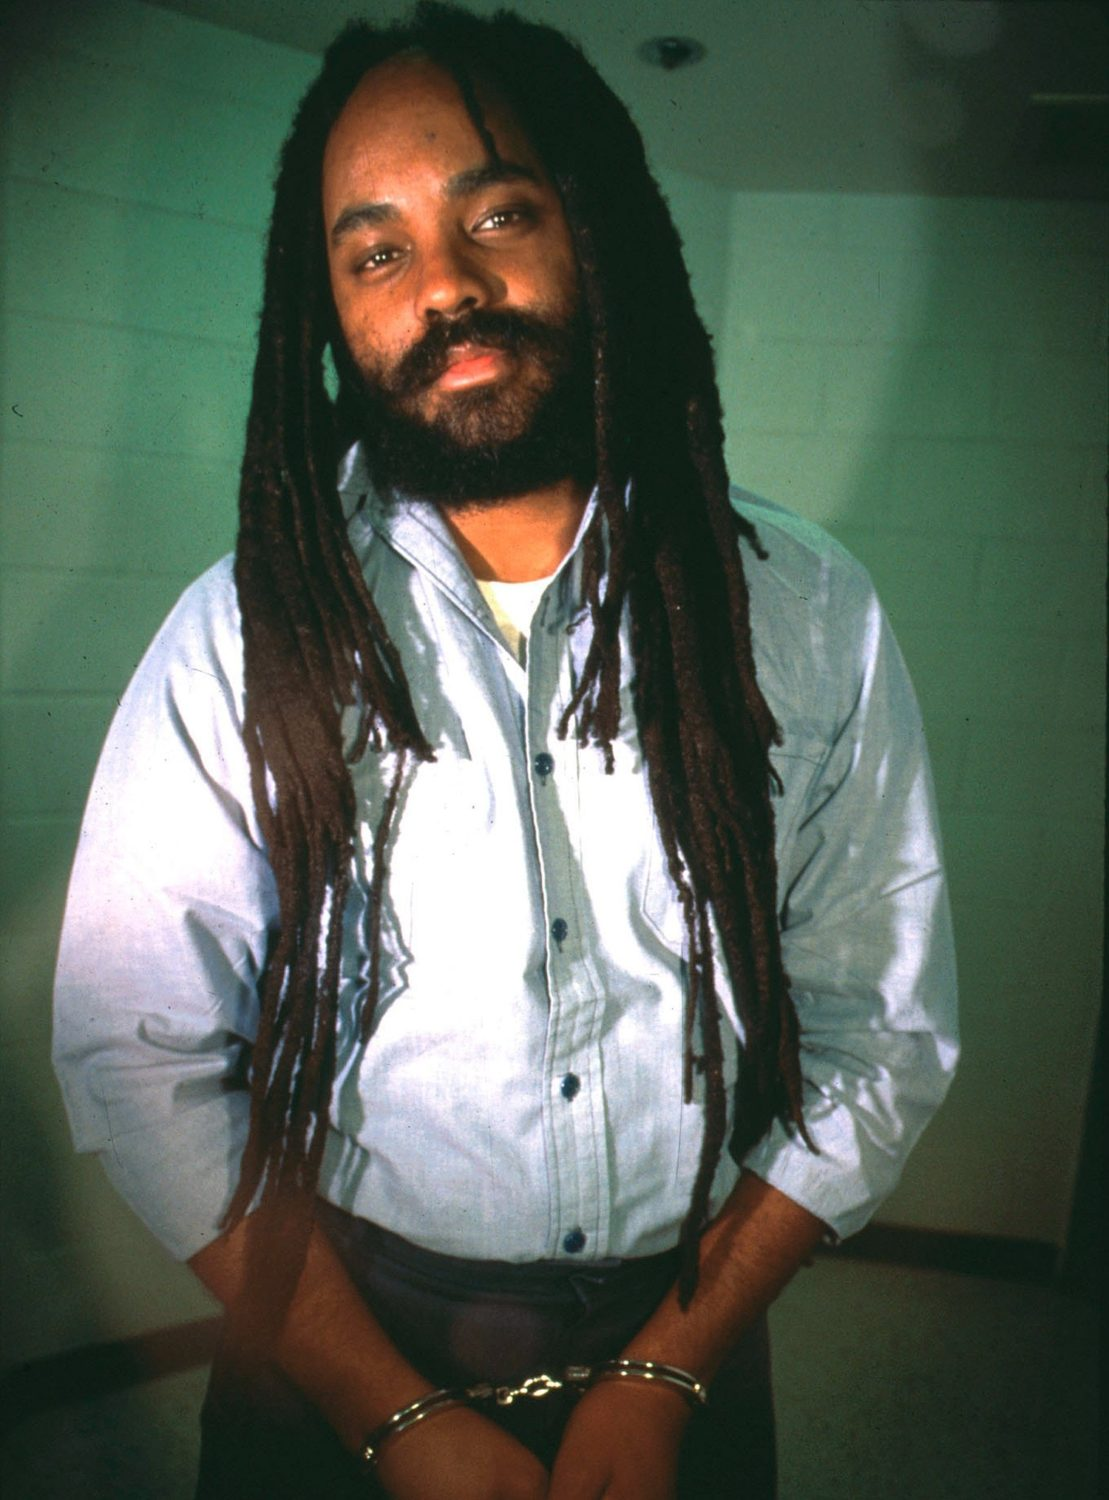 Mumia-Abu-Jamal-121395-by-Lisa-Terry-Liaison-Agency, Mumia Abu-Jamal is scheduled for open-heart surgery, Behind Enemy Lines